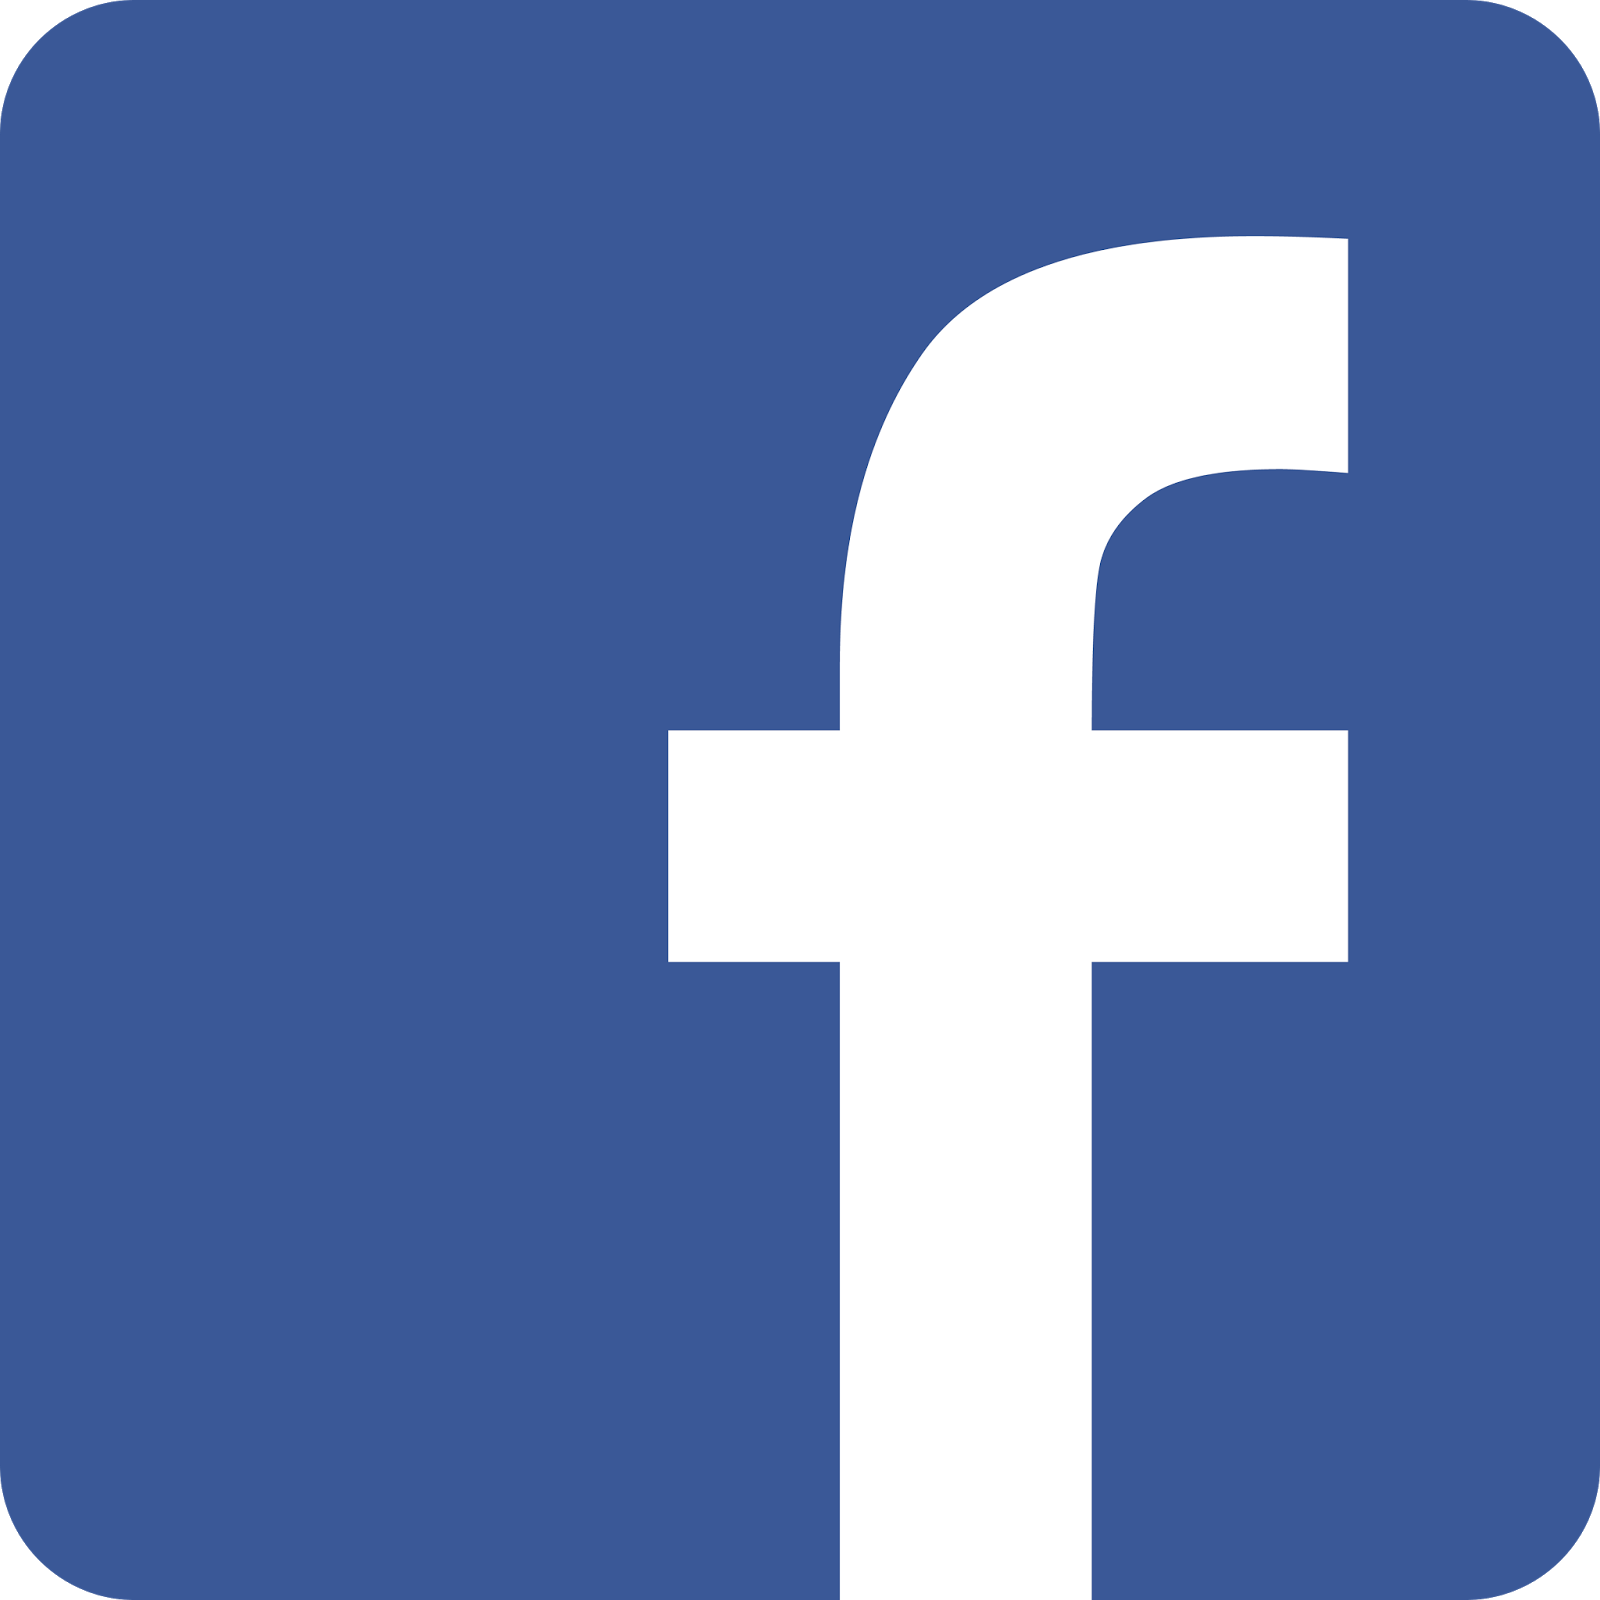 facebook android application download